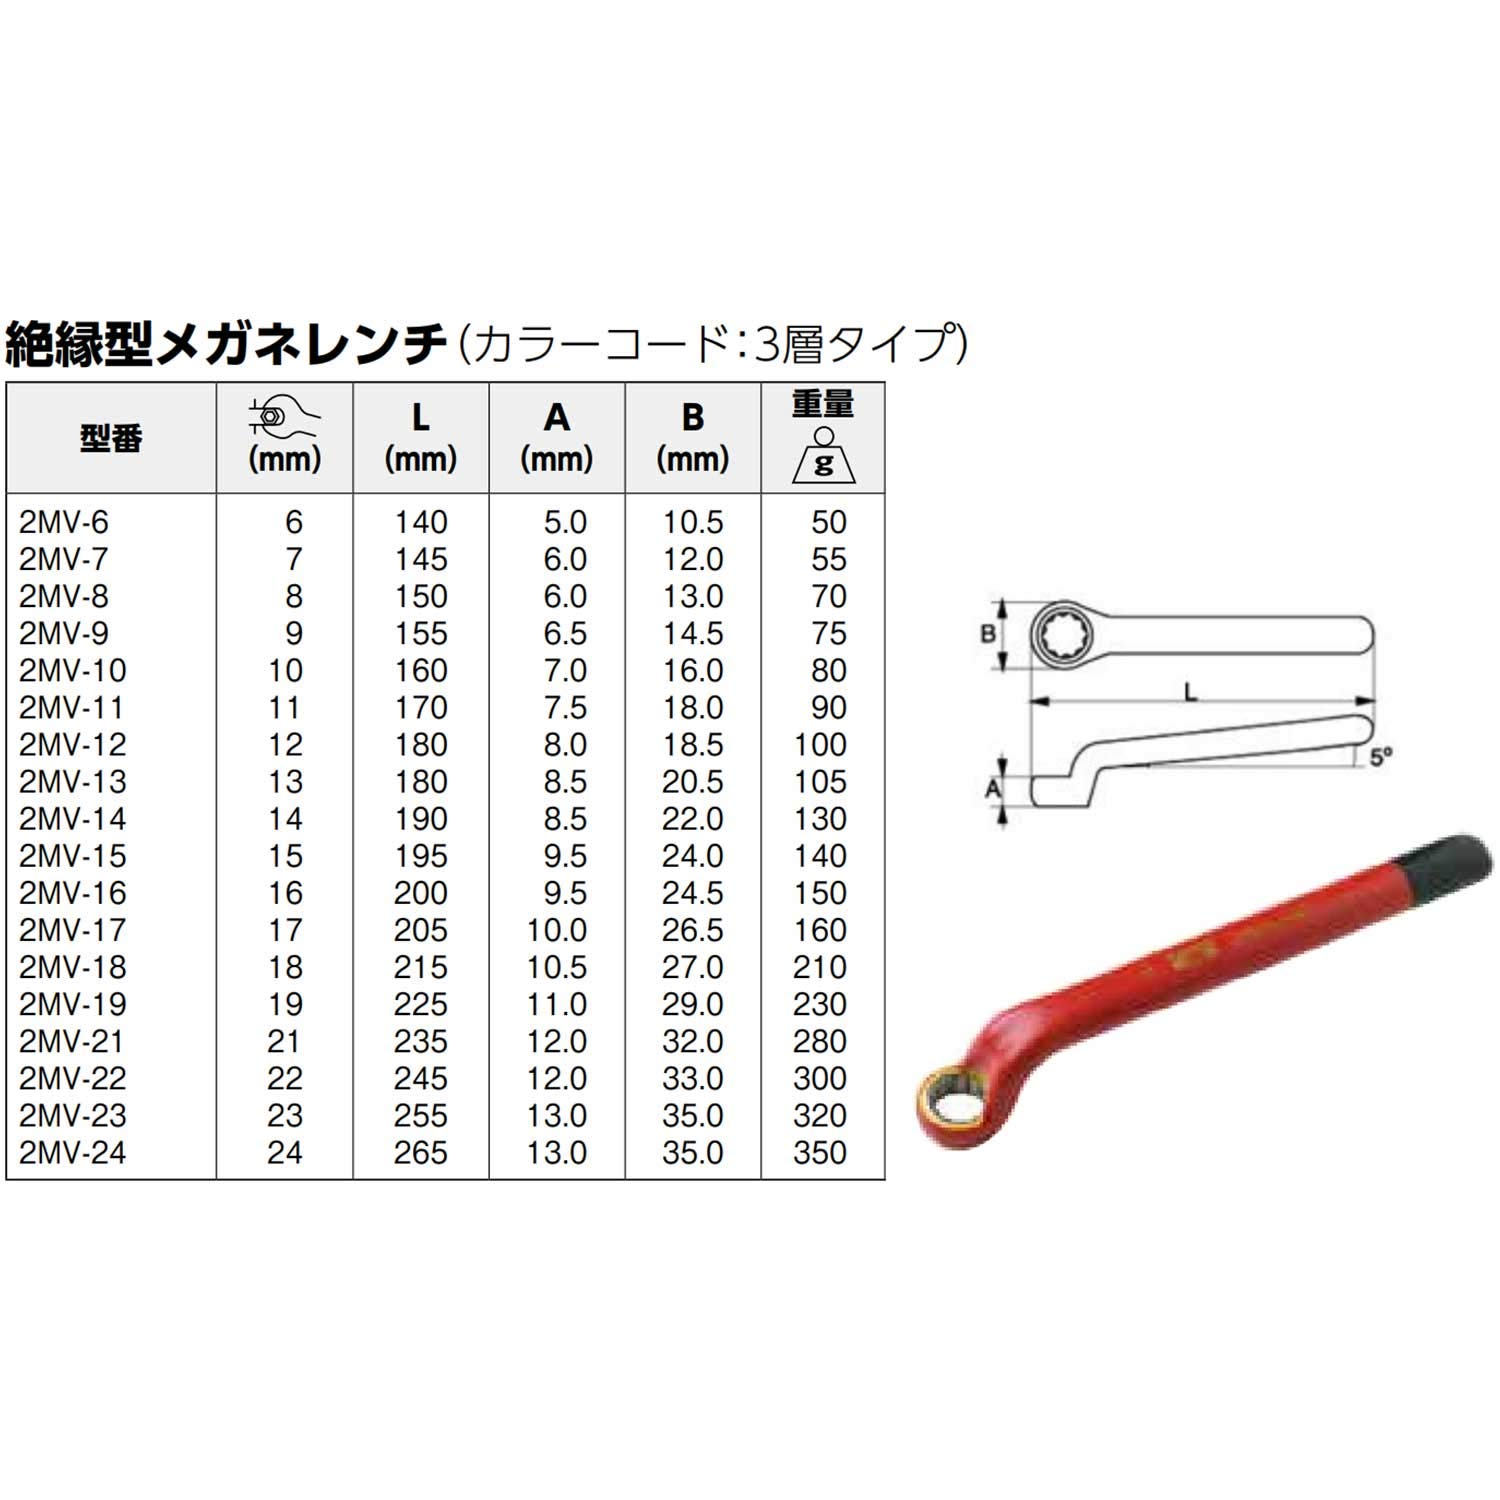 BAHCO 2MV-13 1000 Volt 13 Millimeter Offset Box End Wrench Snap-On Industrial Brand BAHCO